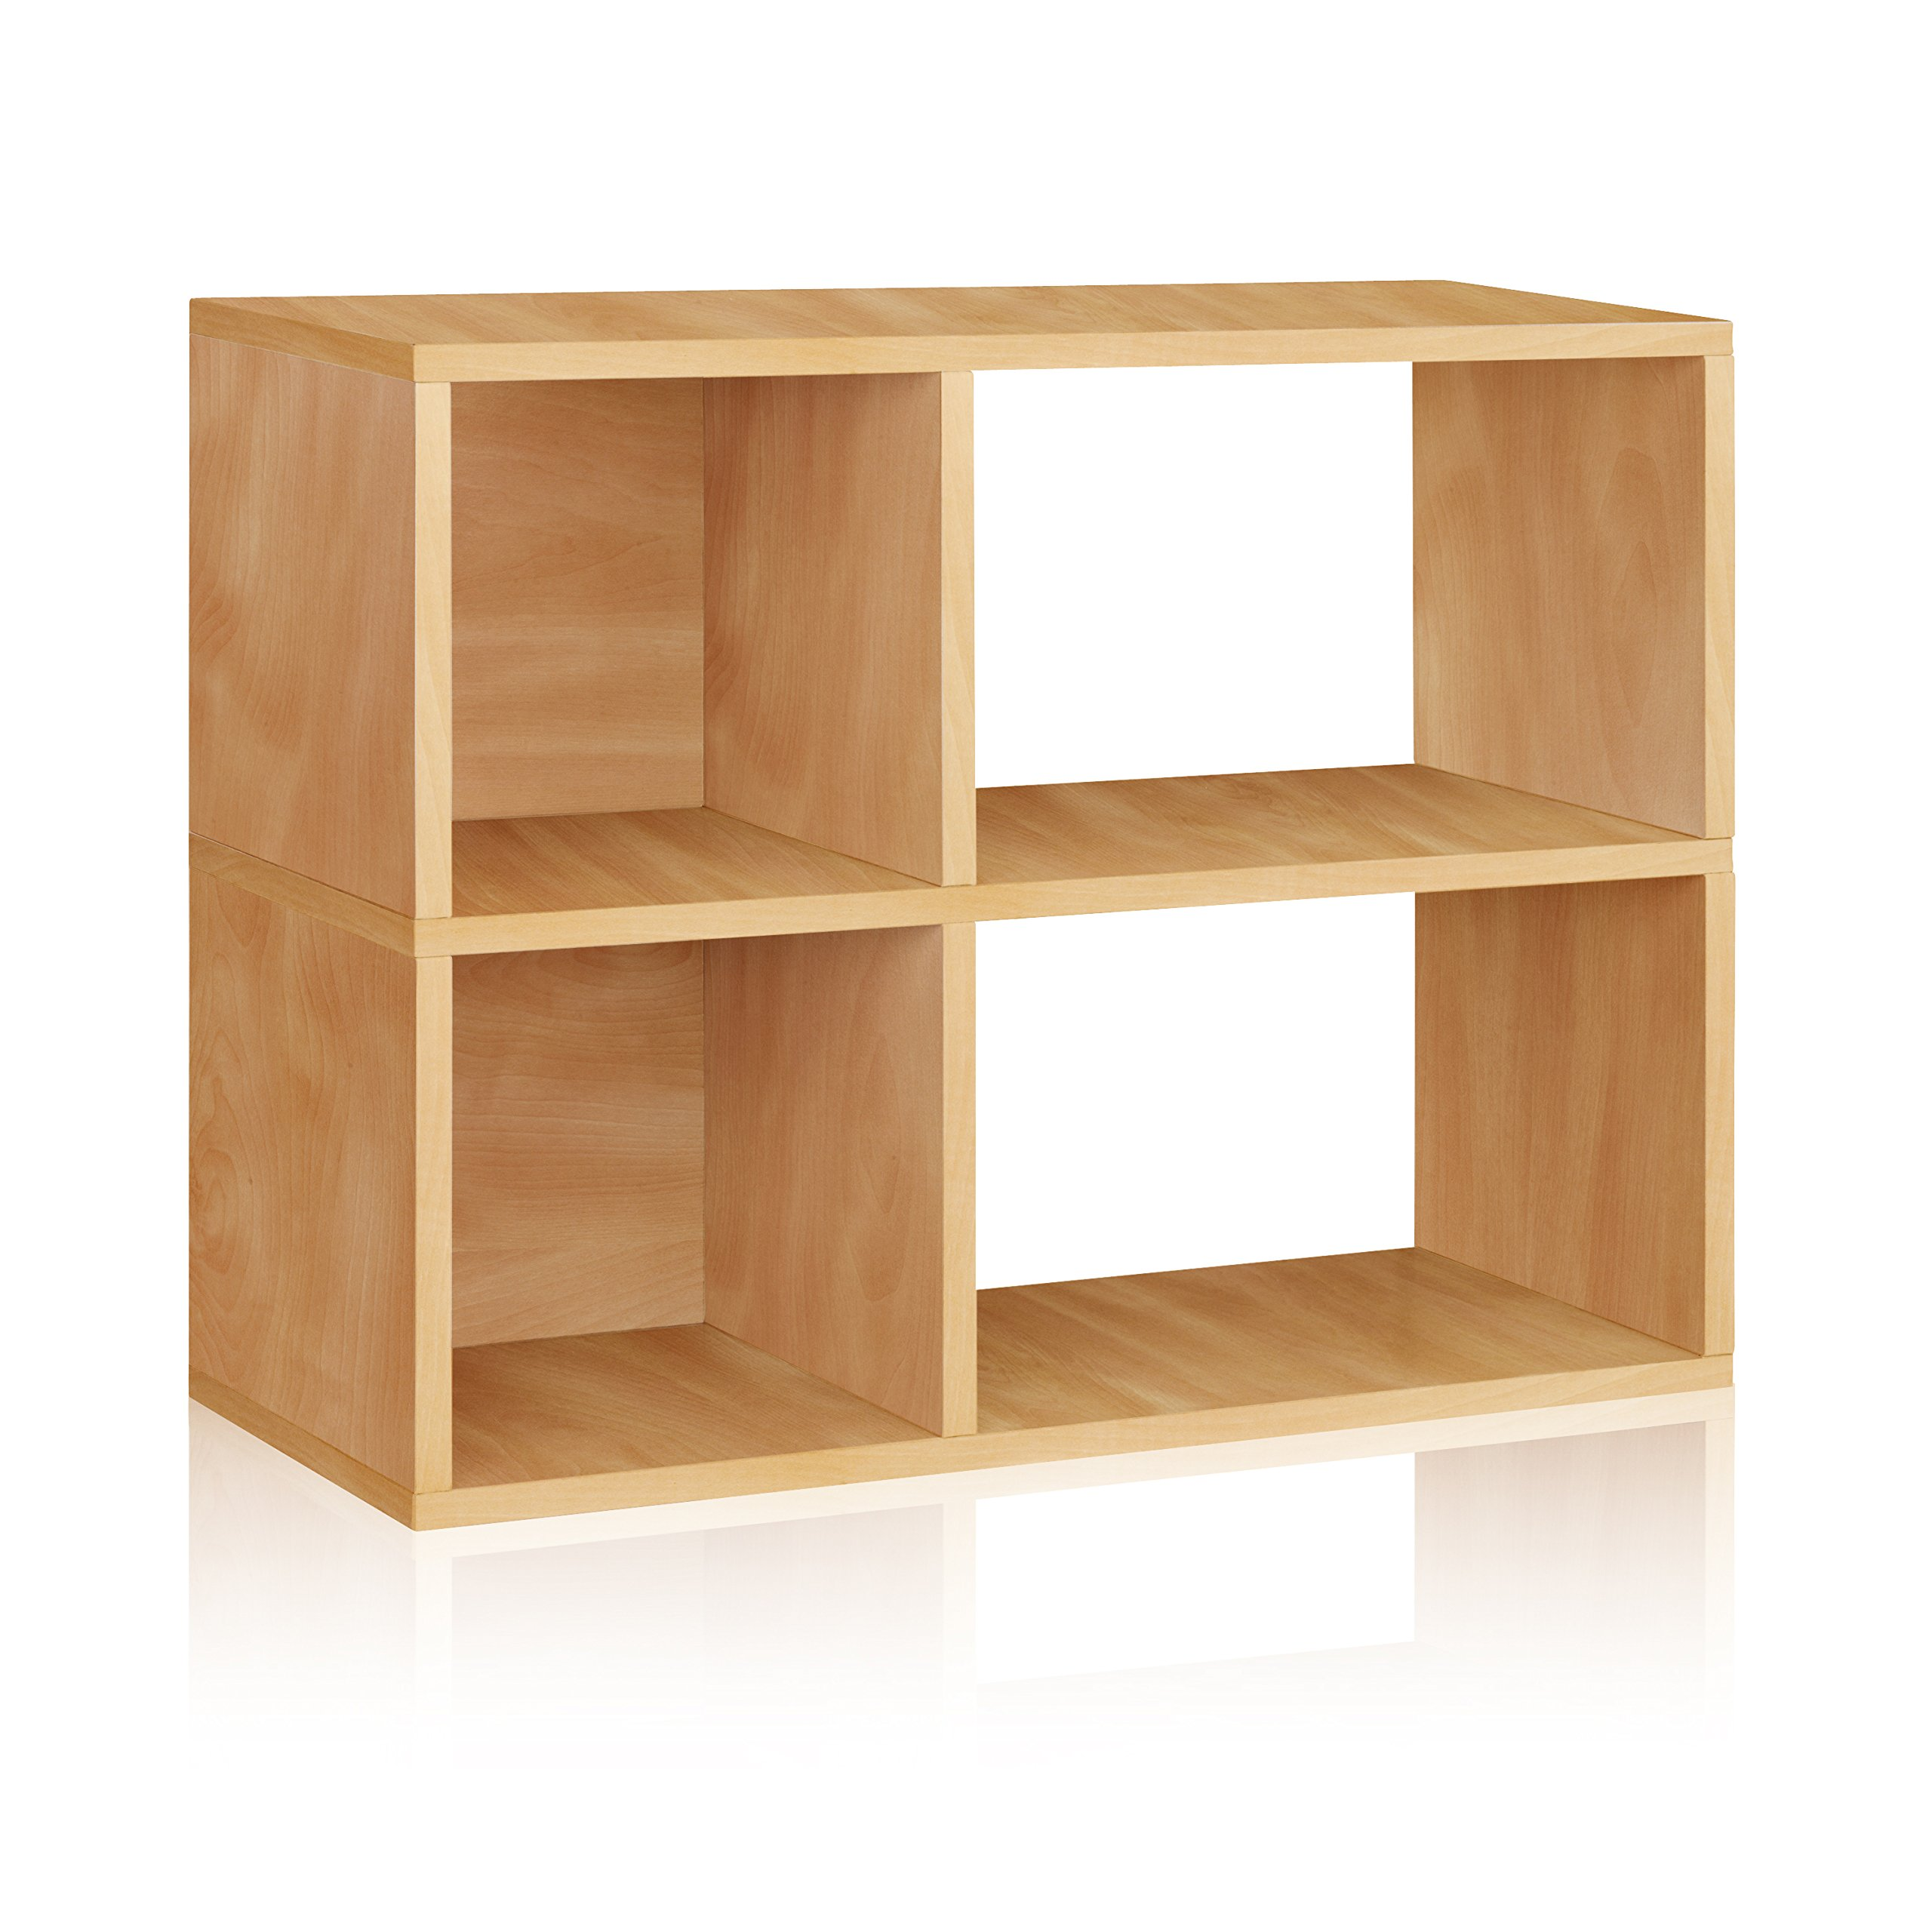 Way Basics Eco 2 Shelf Chelsea Bookcase and Cubby Storage, Natural (made from sustainable non-toxic zBoard paperboard)